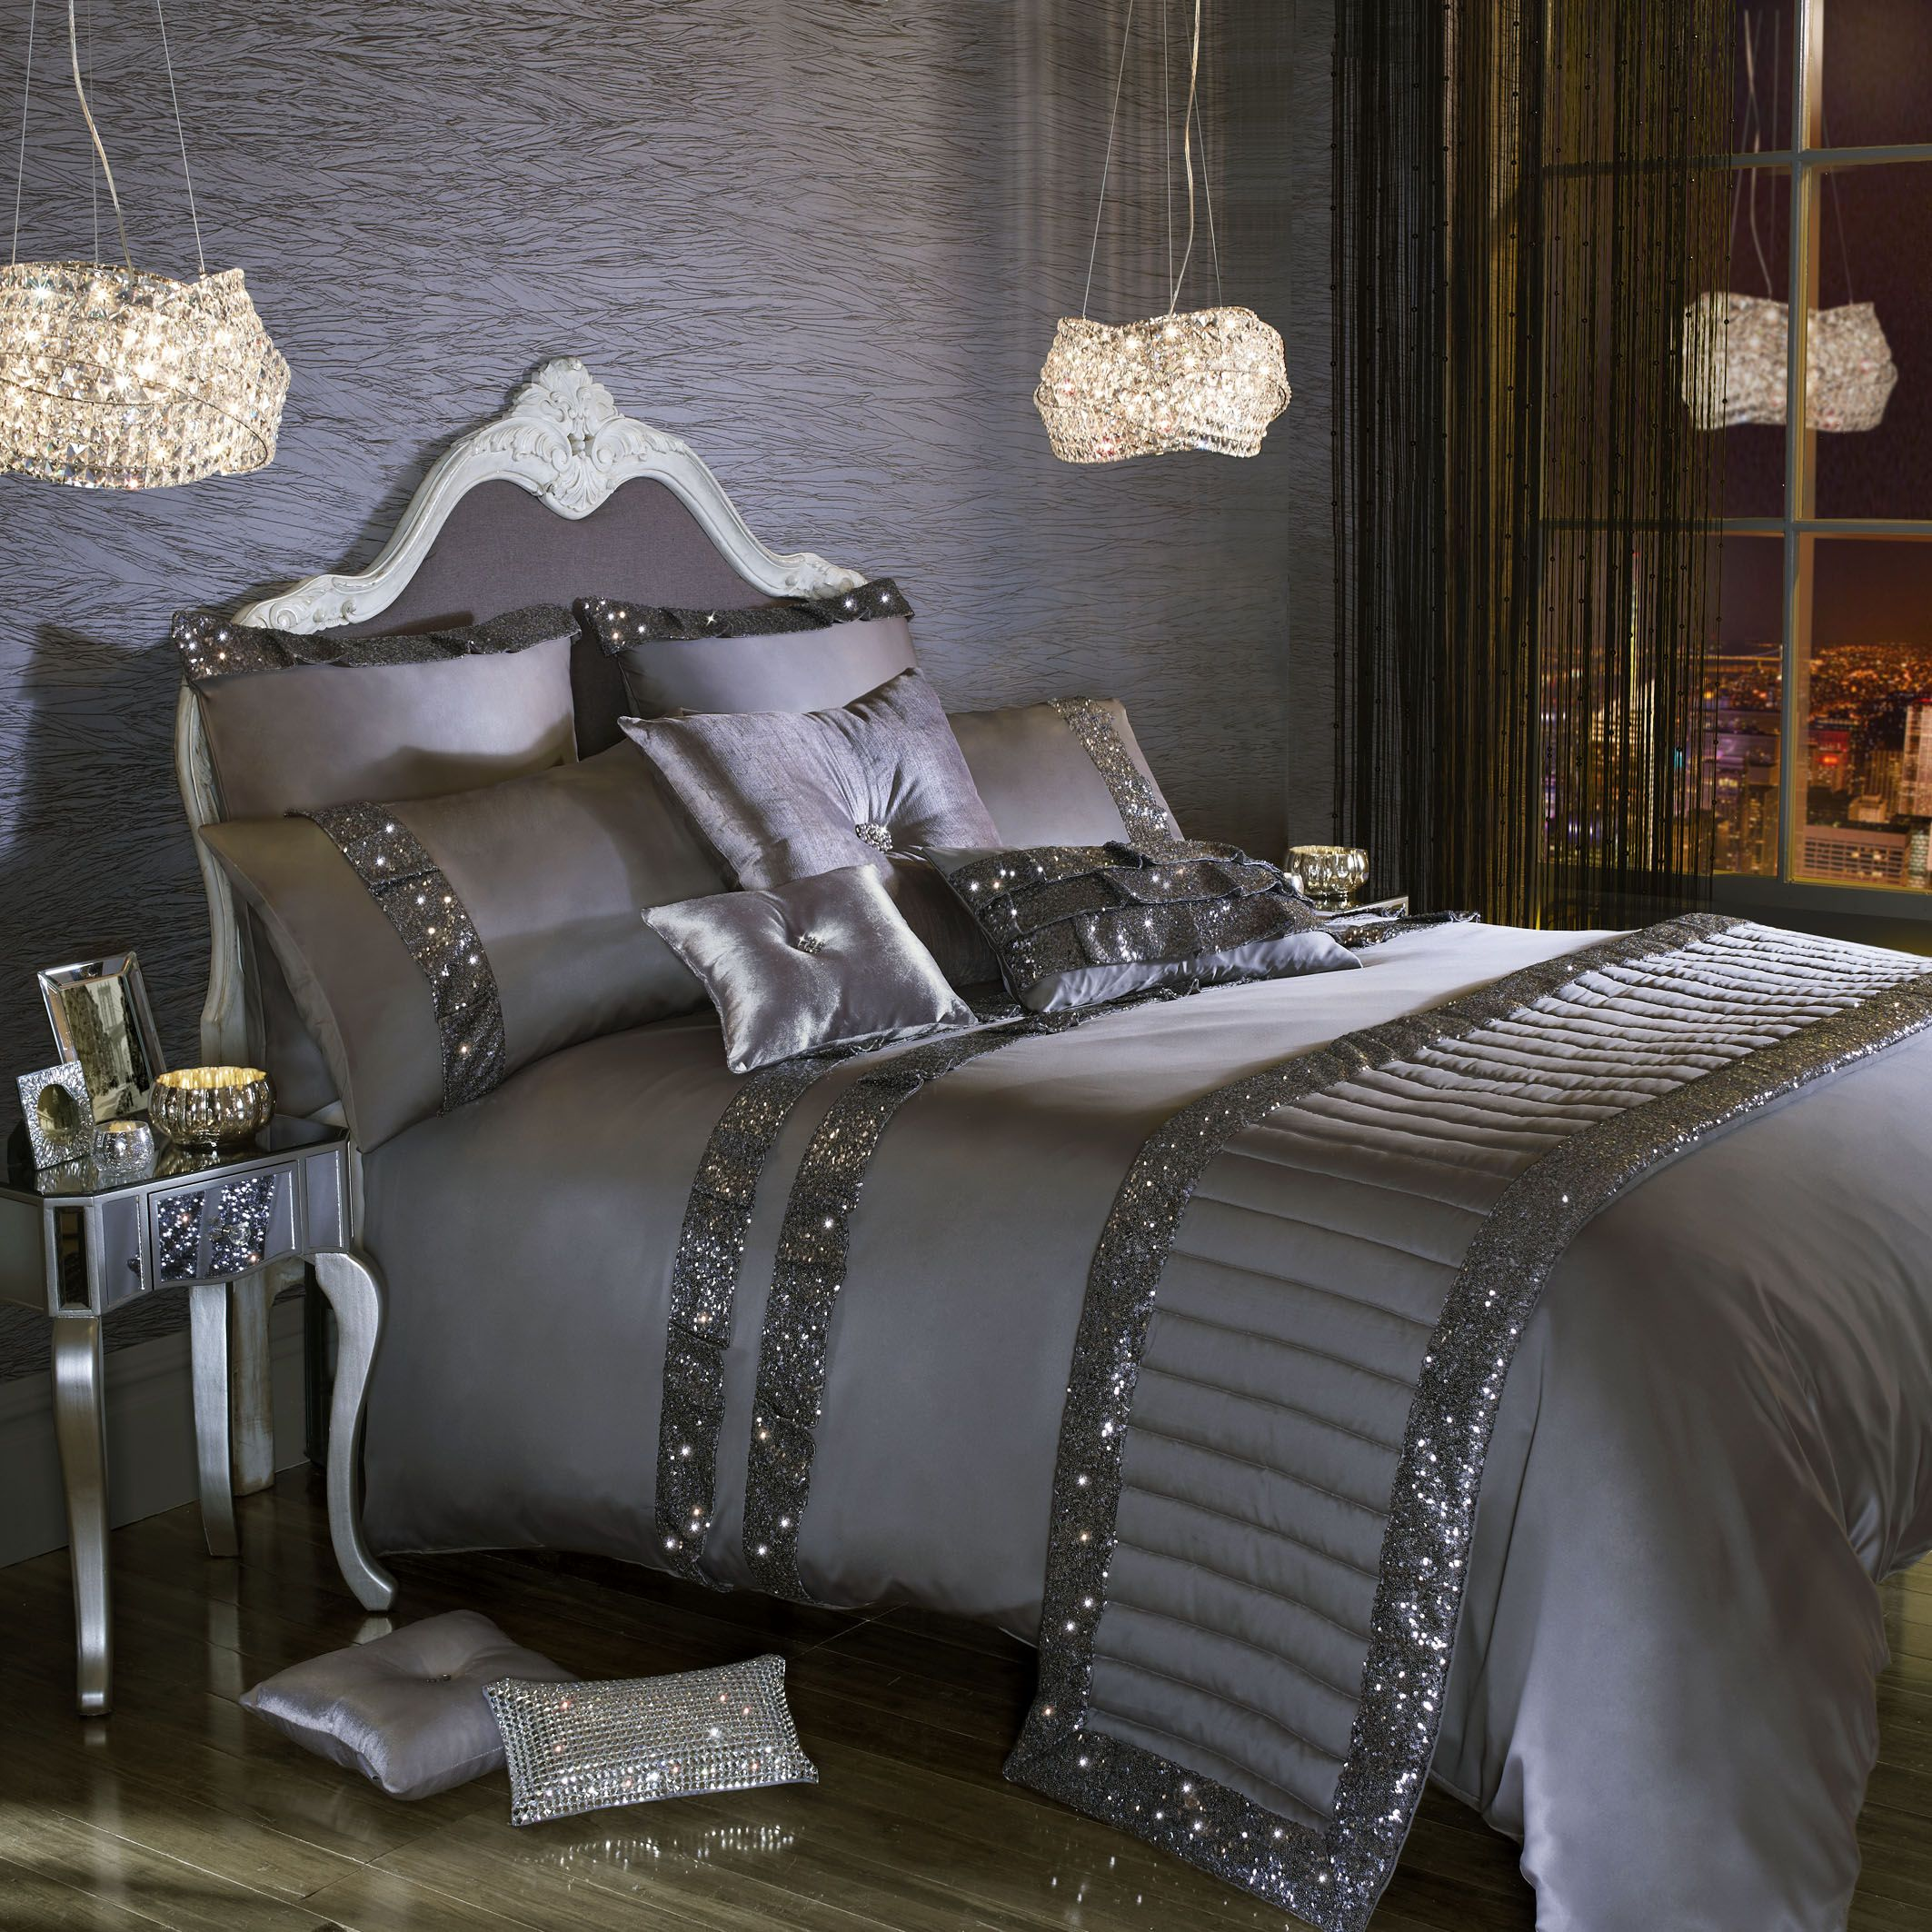 comforters covers silver modern burgundy king ter of clearance most white and vision bedding cotton quilt plain twin down doona sets buy full navy duvet comforter bedroom black double single bedspreads cover size queen duvets online set basic ters